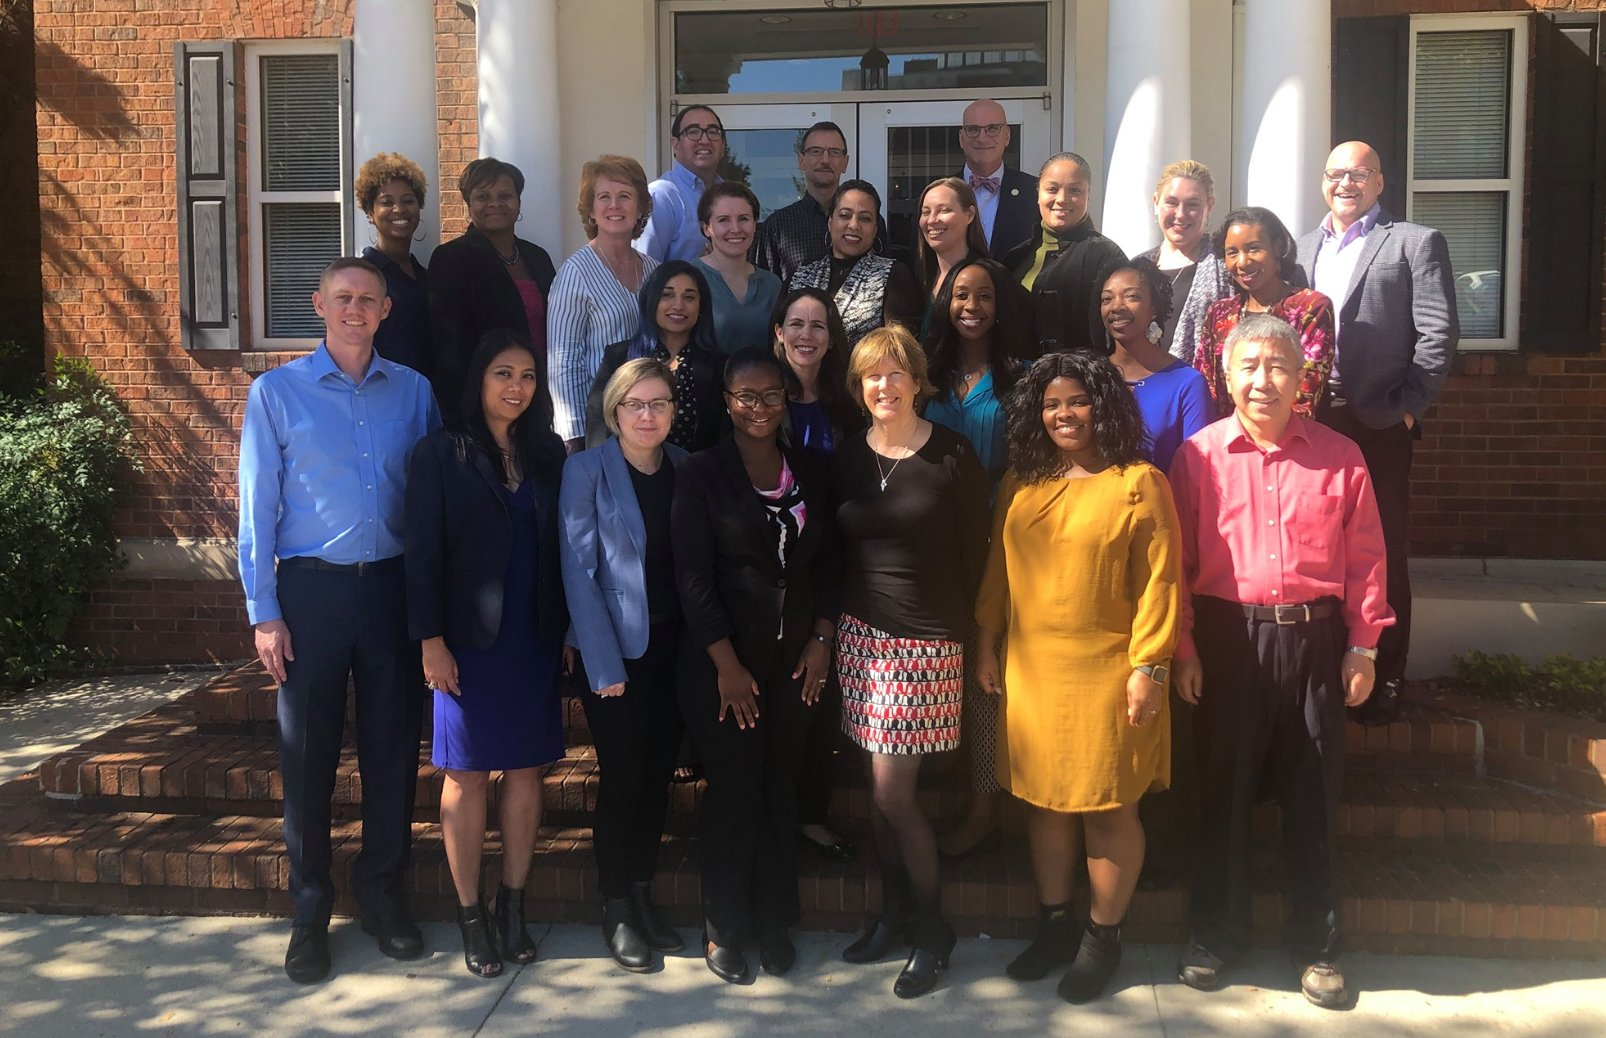 An outdoor group photo of the NACDD team.